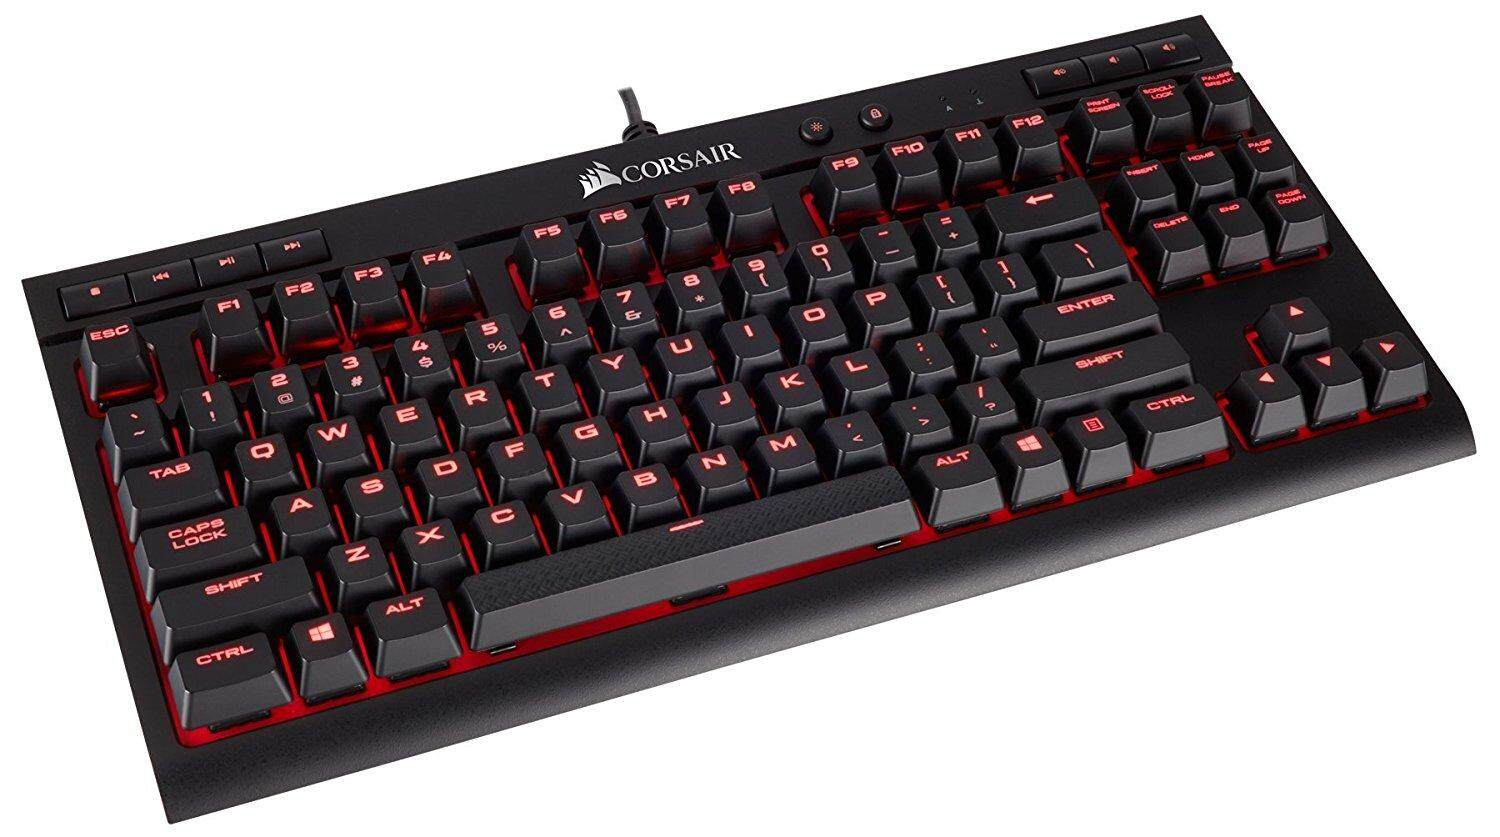 Corsair Computer Accessories Keyboards Price In Malaysia Best Keyboard Gaming K70 Rgb Red Switch Used K63 Compact Mechanical Linear Quiet Cherry Mx